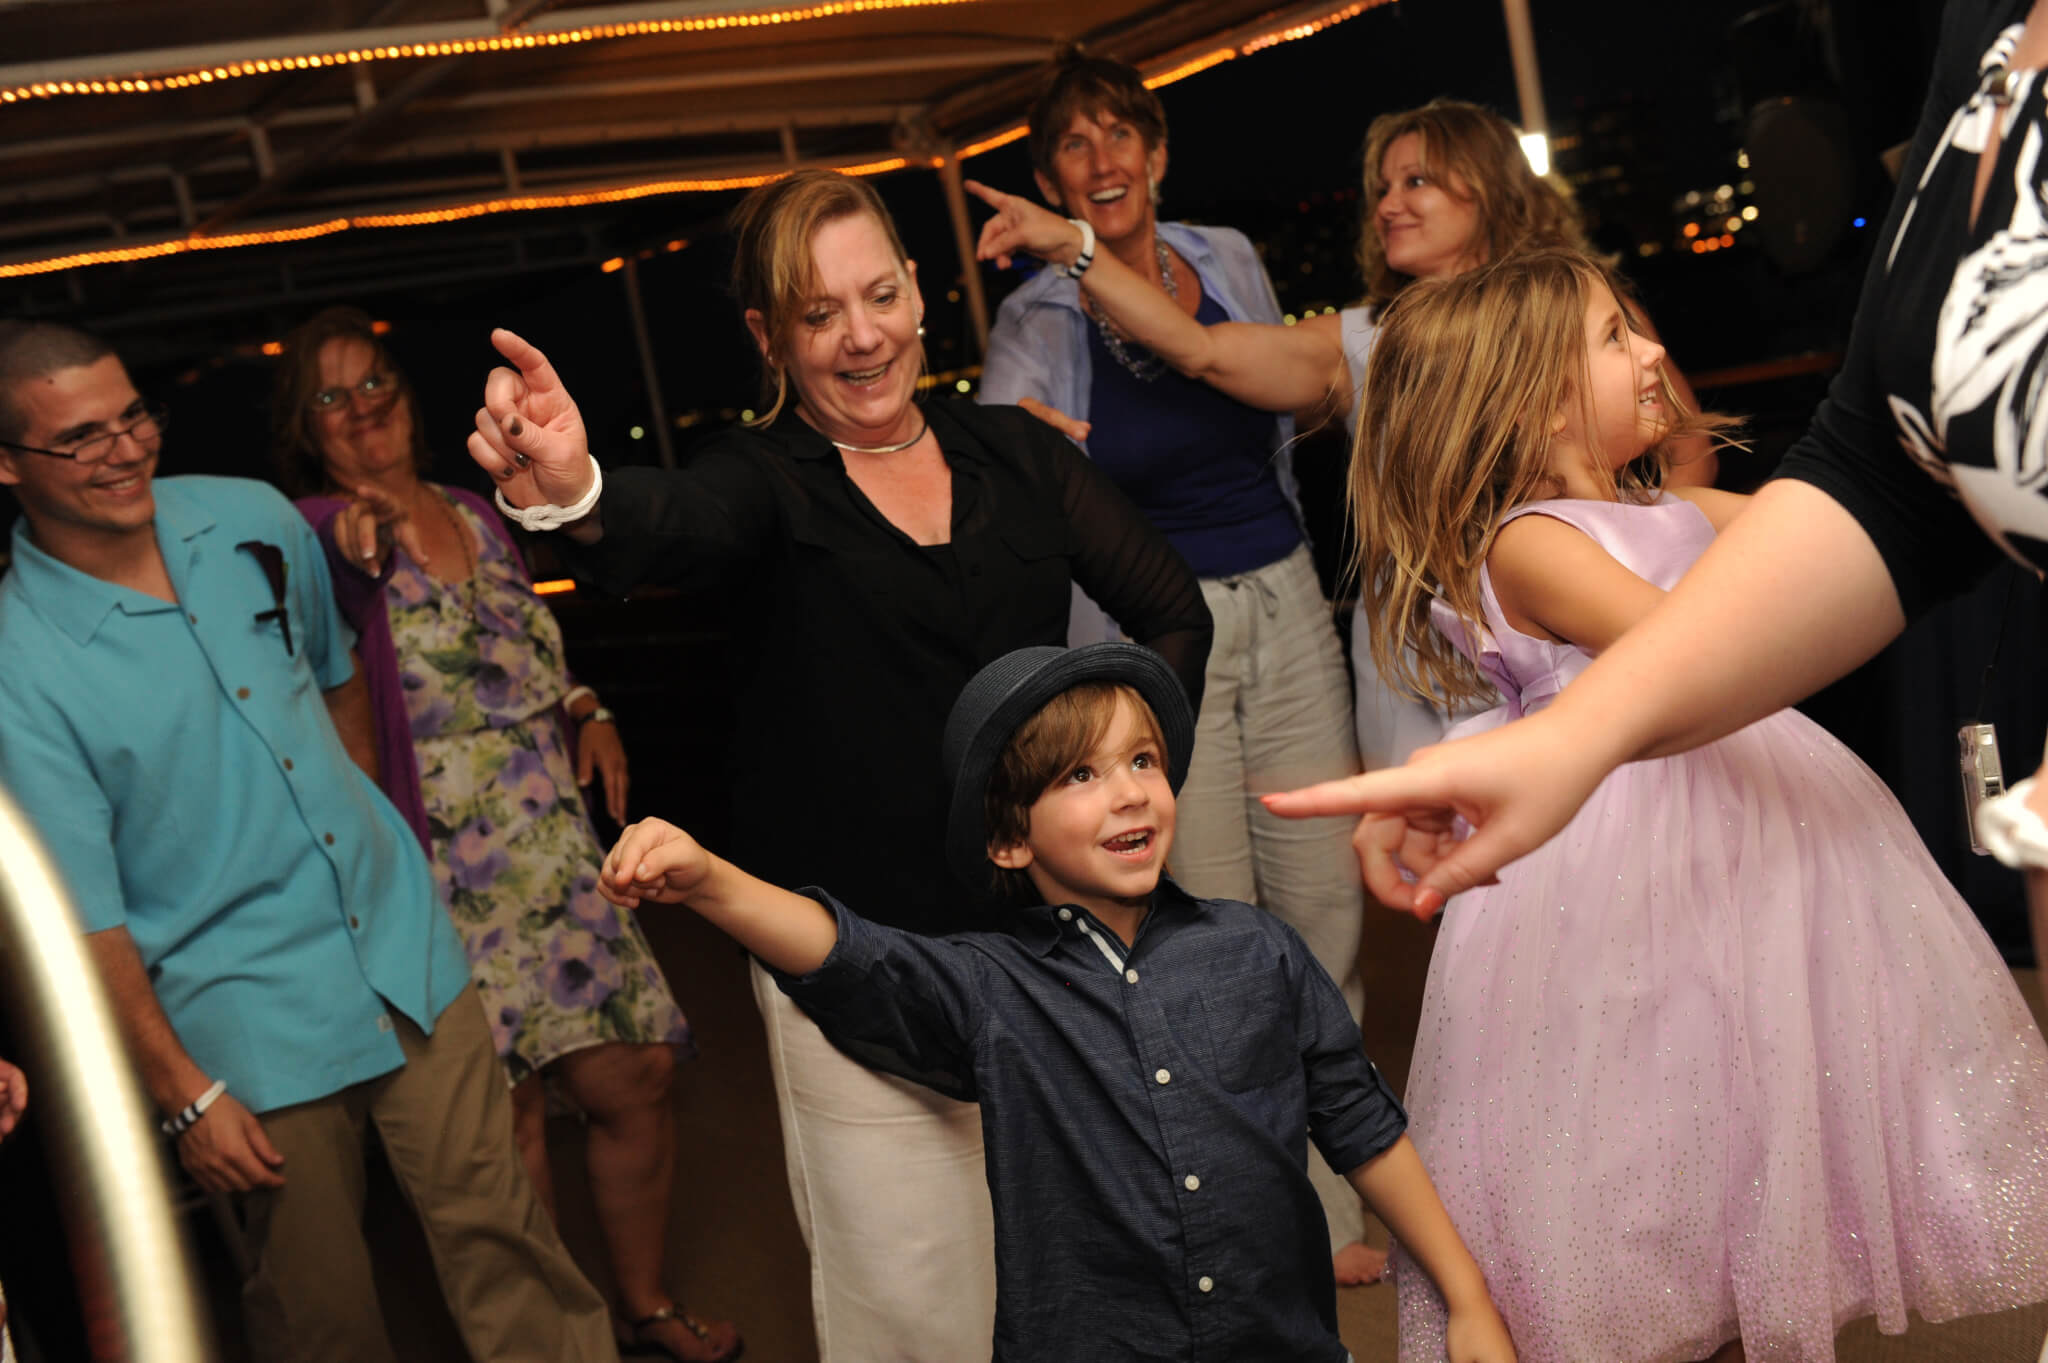 family dancing at wedding